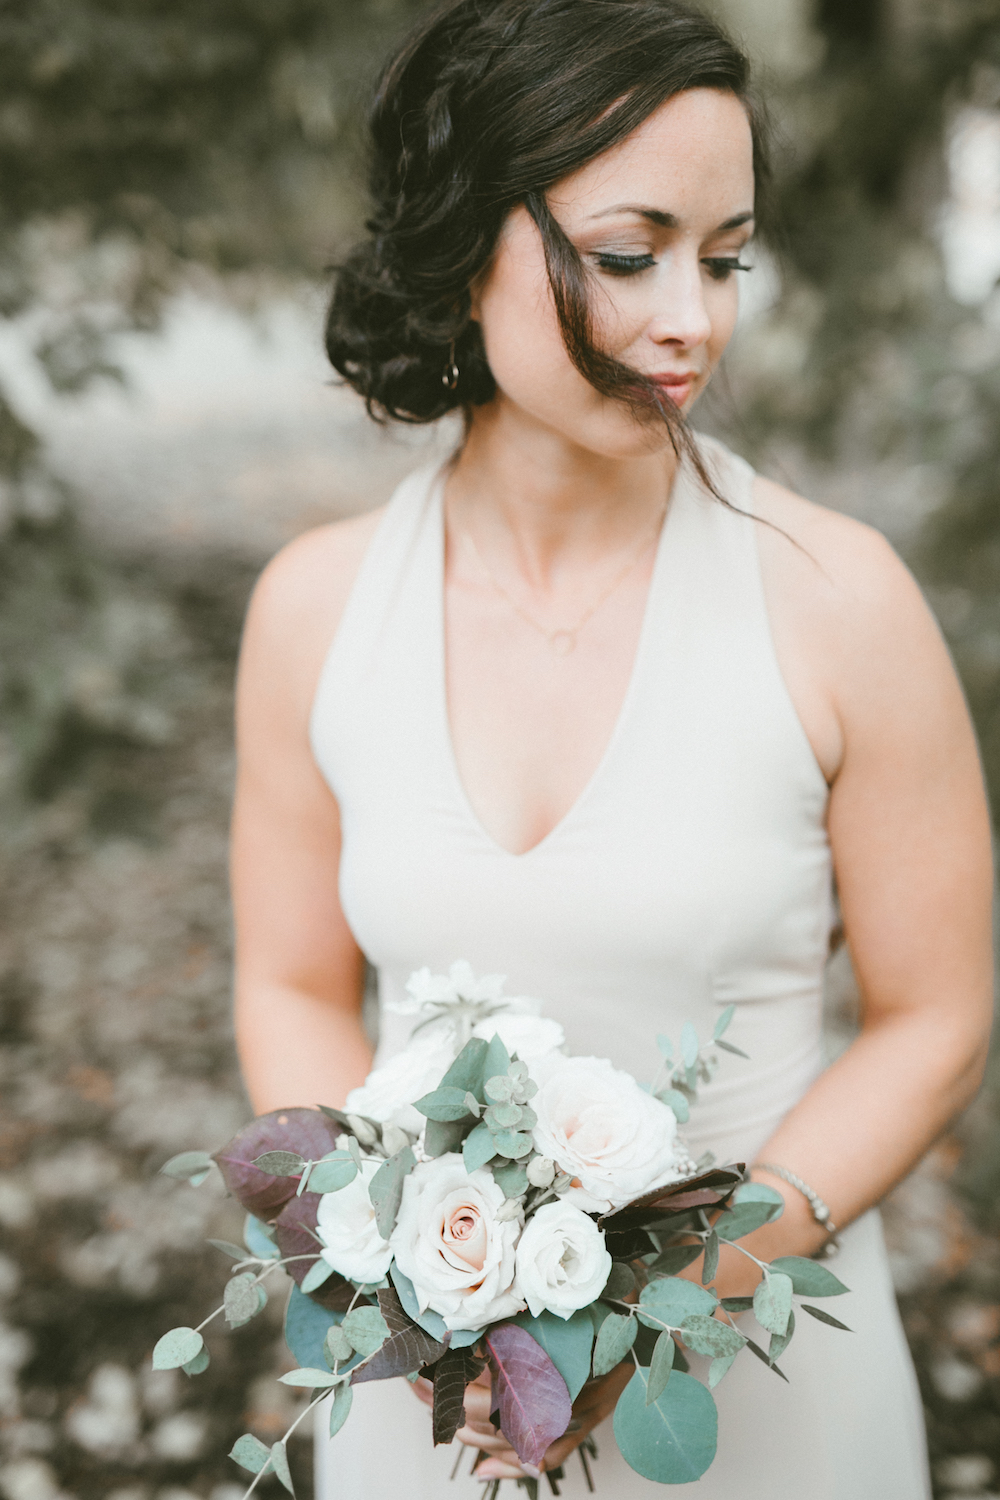 Quicksand Rose Bouquet - Winnipeg Wedding Flowers